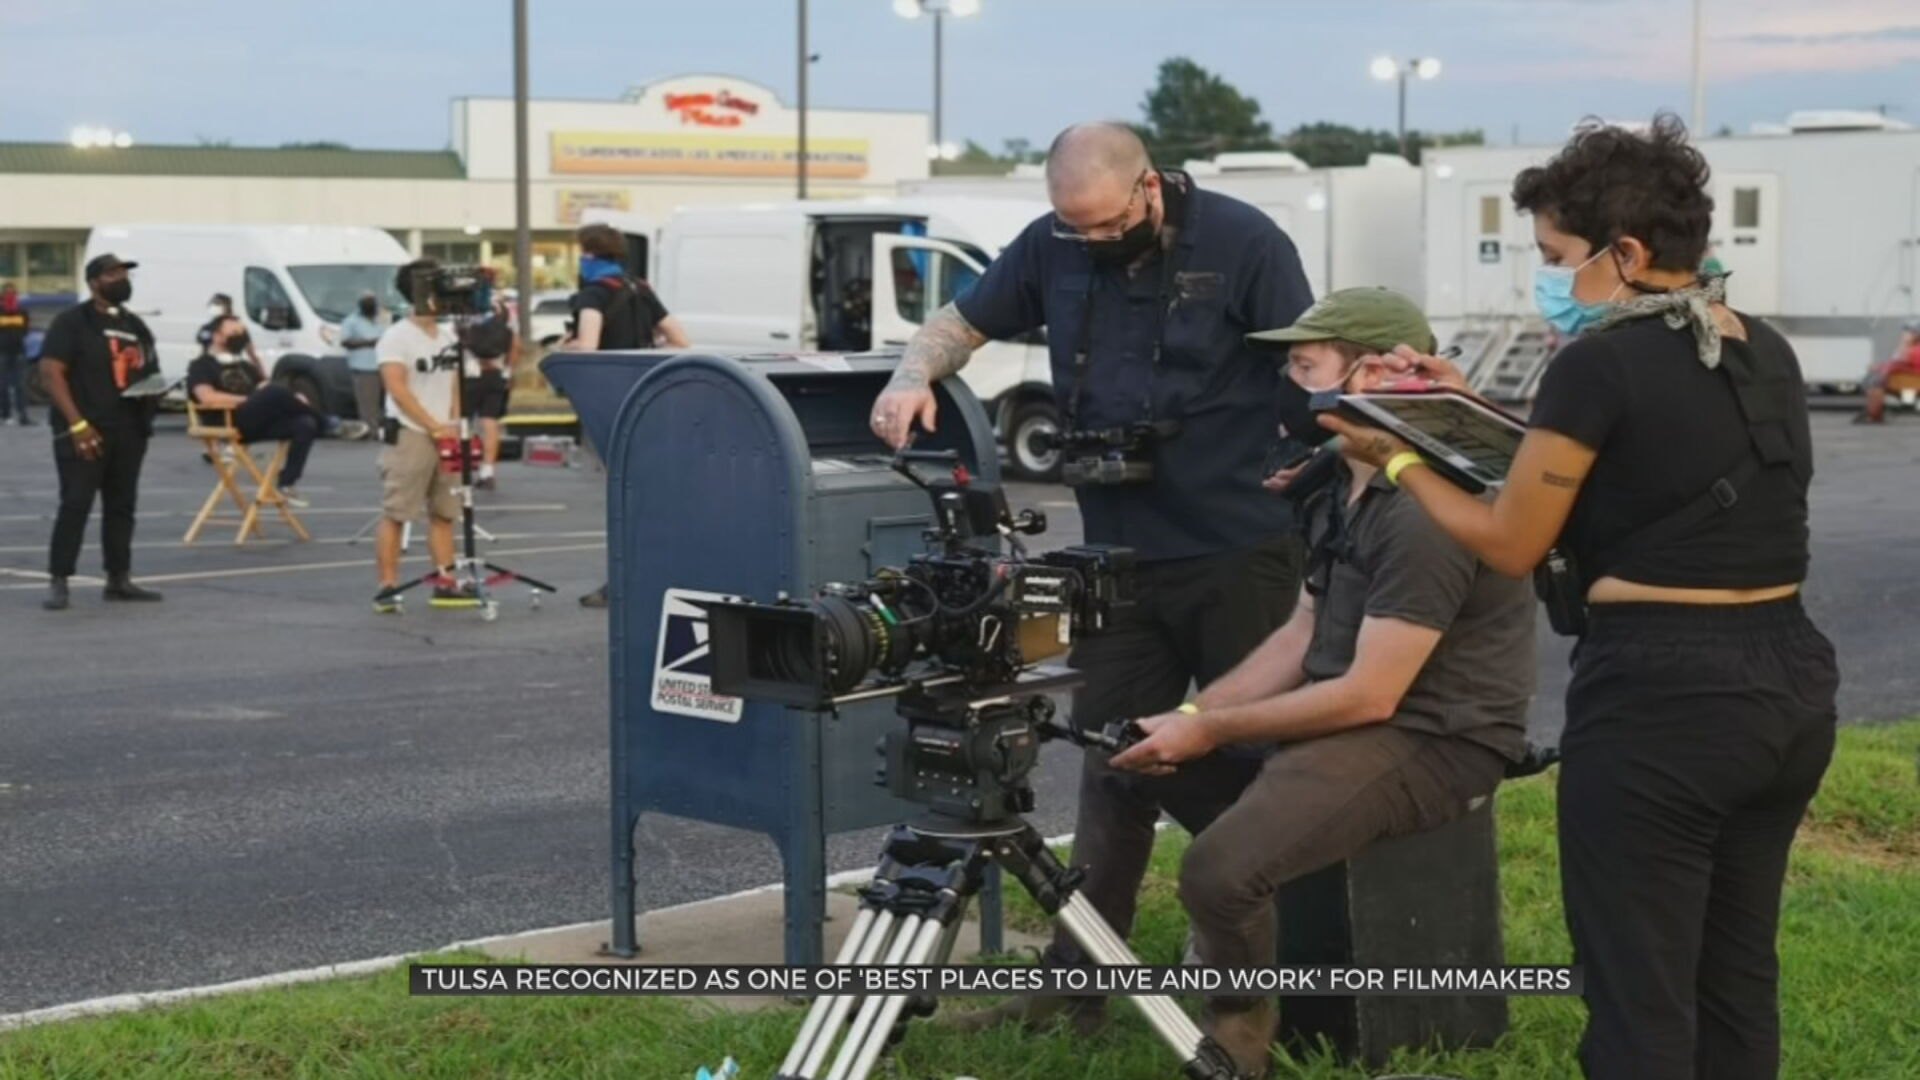 Tulsa Recognized As One Of Top 10 Places To Live, Work For Filmmakers